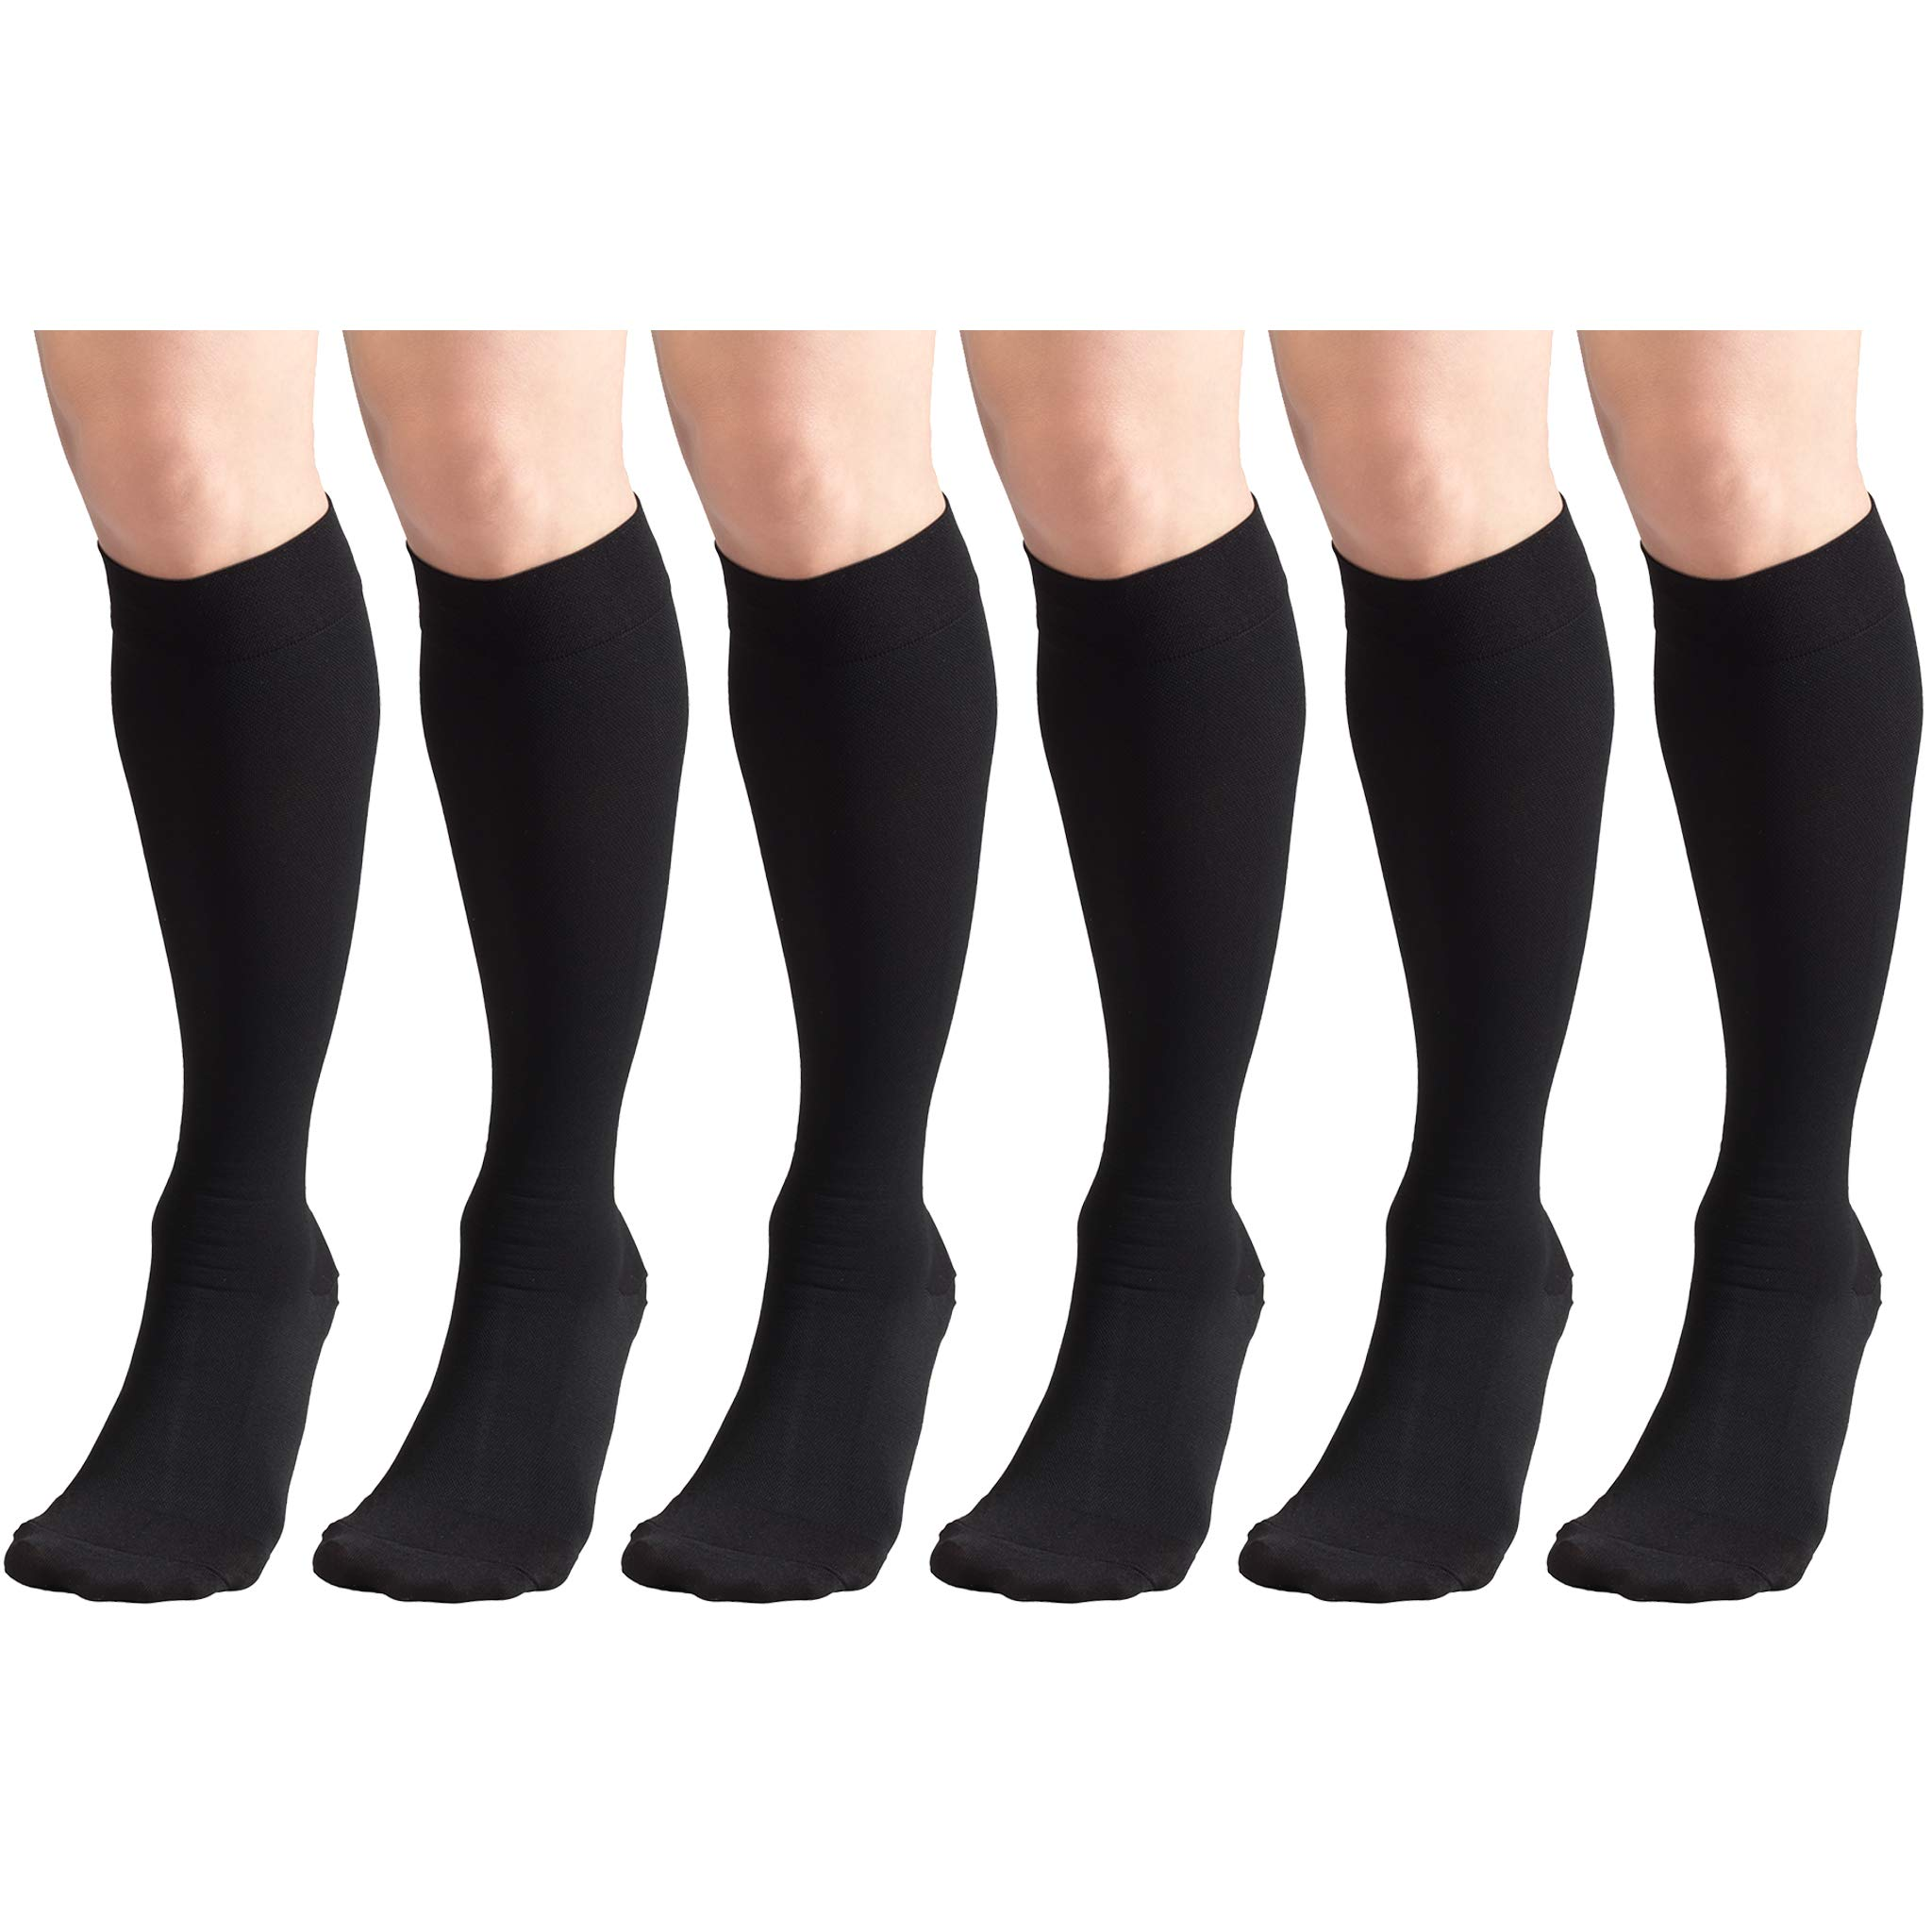 20-30 mmHg Compression Stockings for Men and Women, Knee High Length, Closed Toe Black Large (6 Pairs)